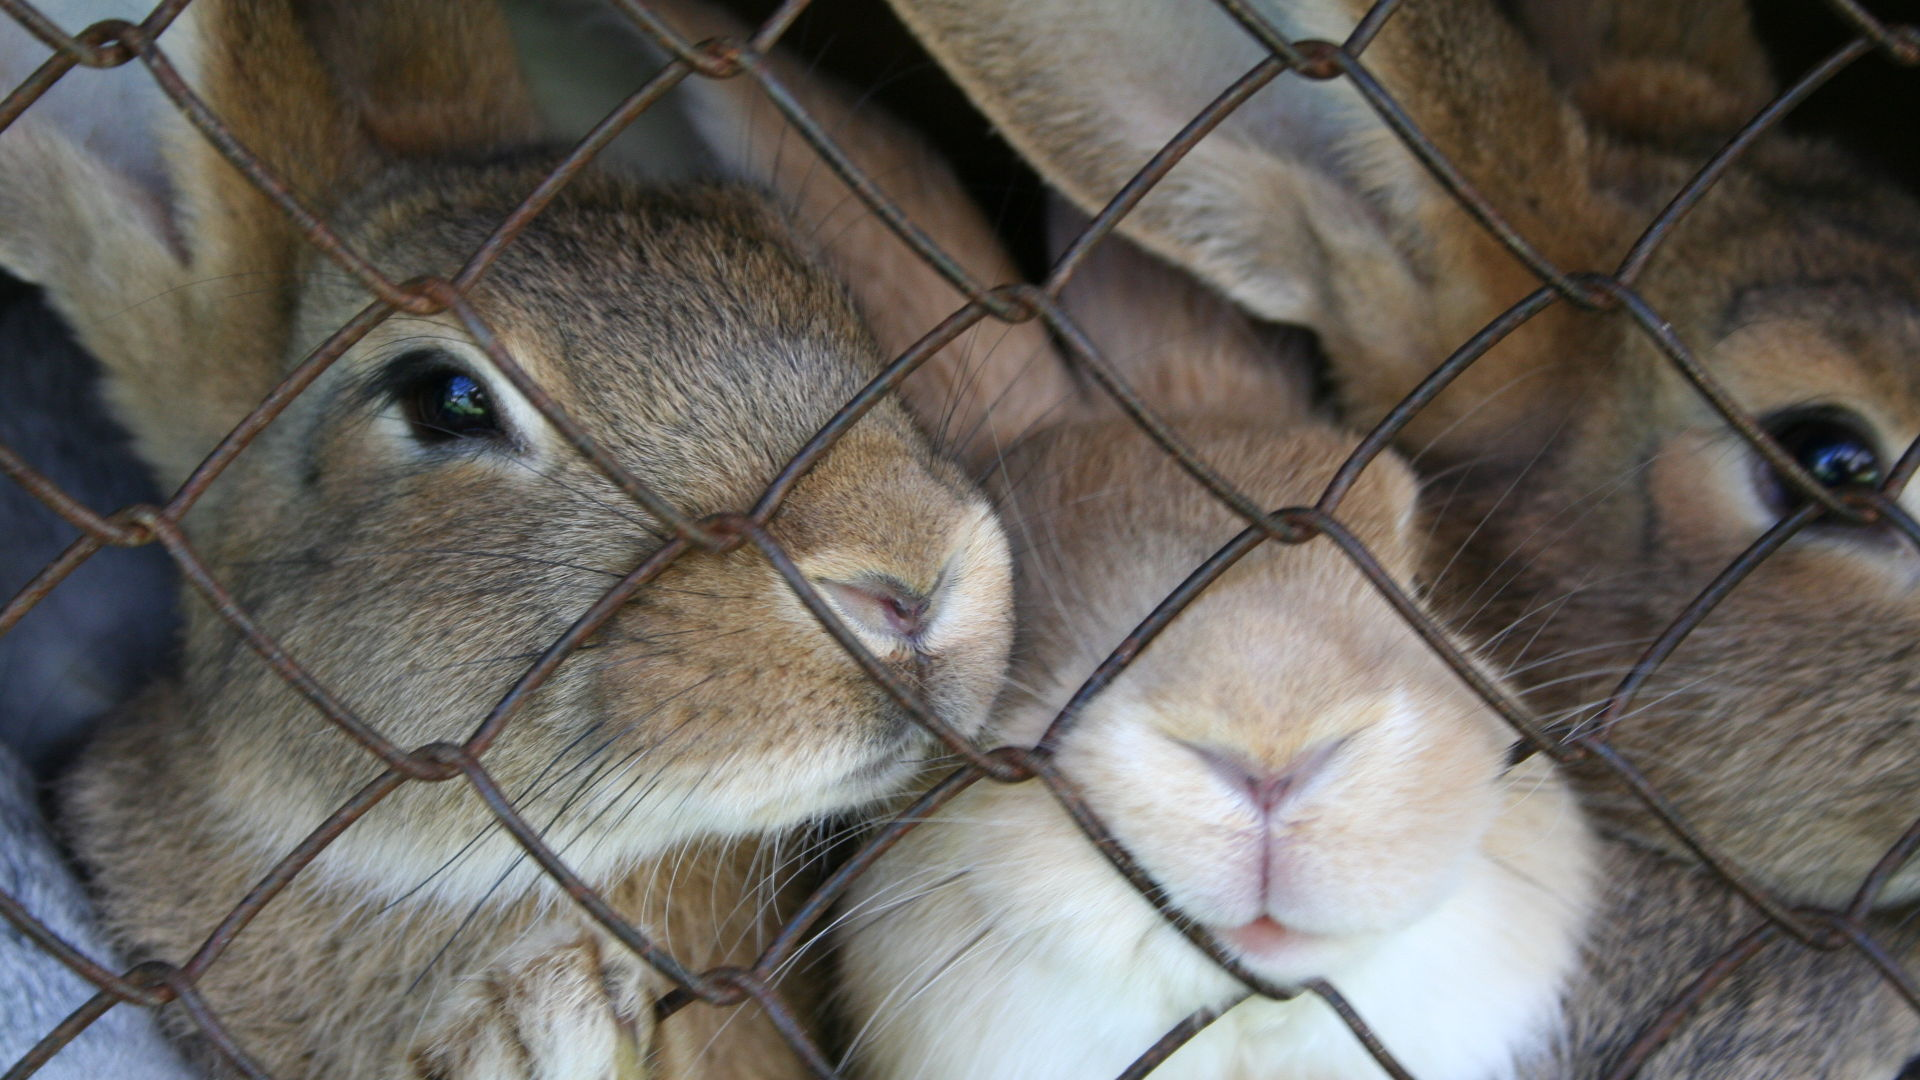 Caged rabbits. Photo credit: Nauris Mozoleff on Free Images.